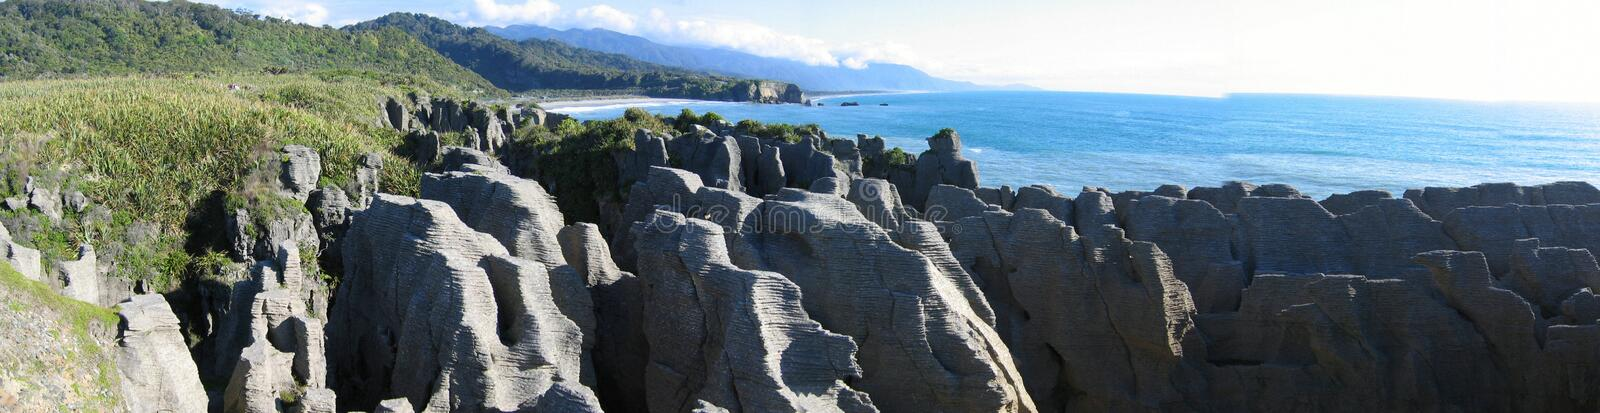 Download Pancake Rocks Background Royalty Free Stock Images - Image: 22509